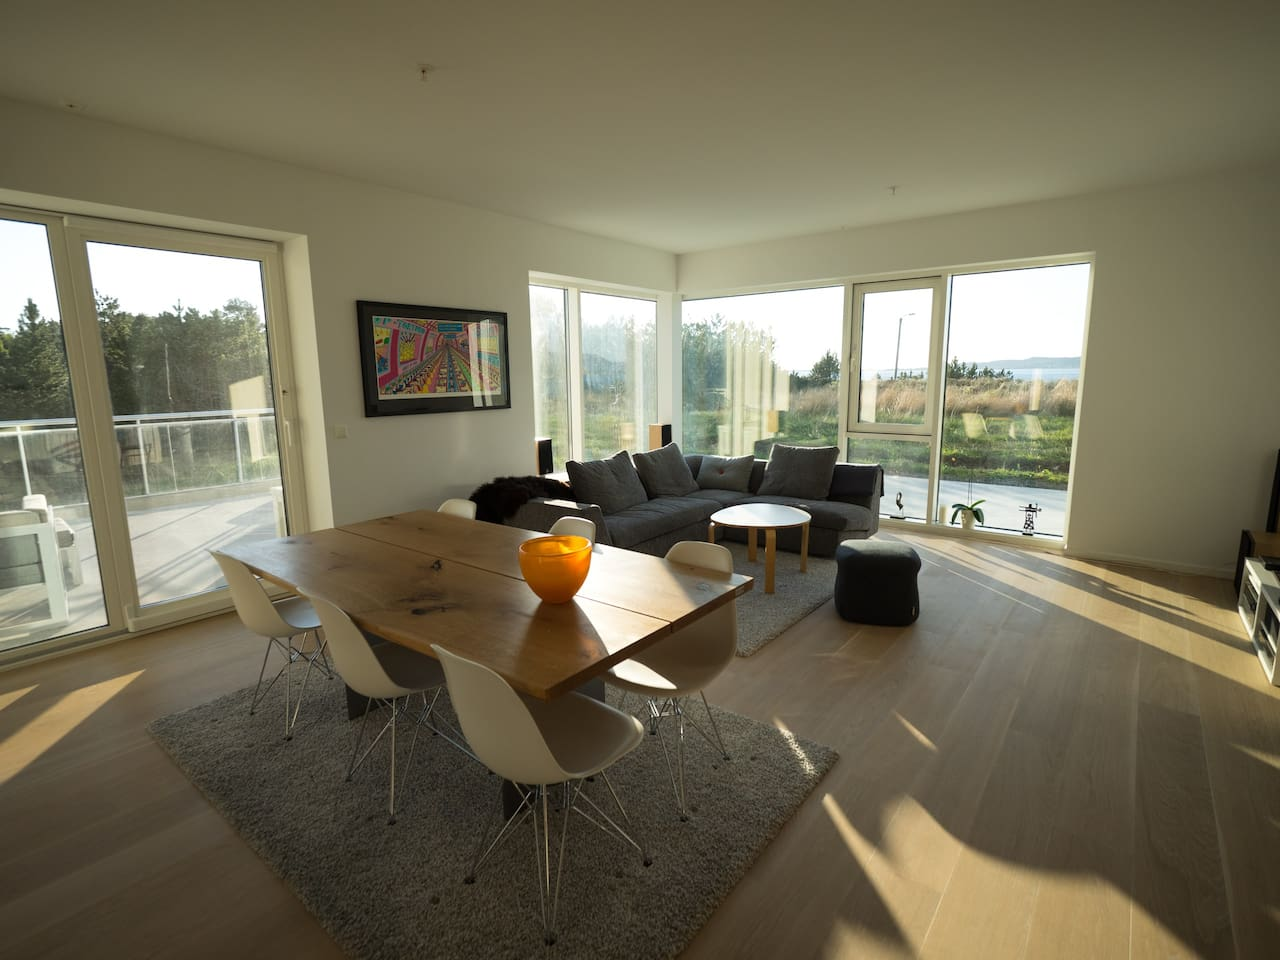 Large windows and lots of light and a spectacular view in the living room. Comfortable furniture.